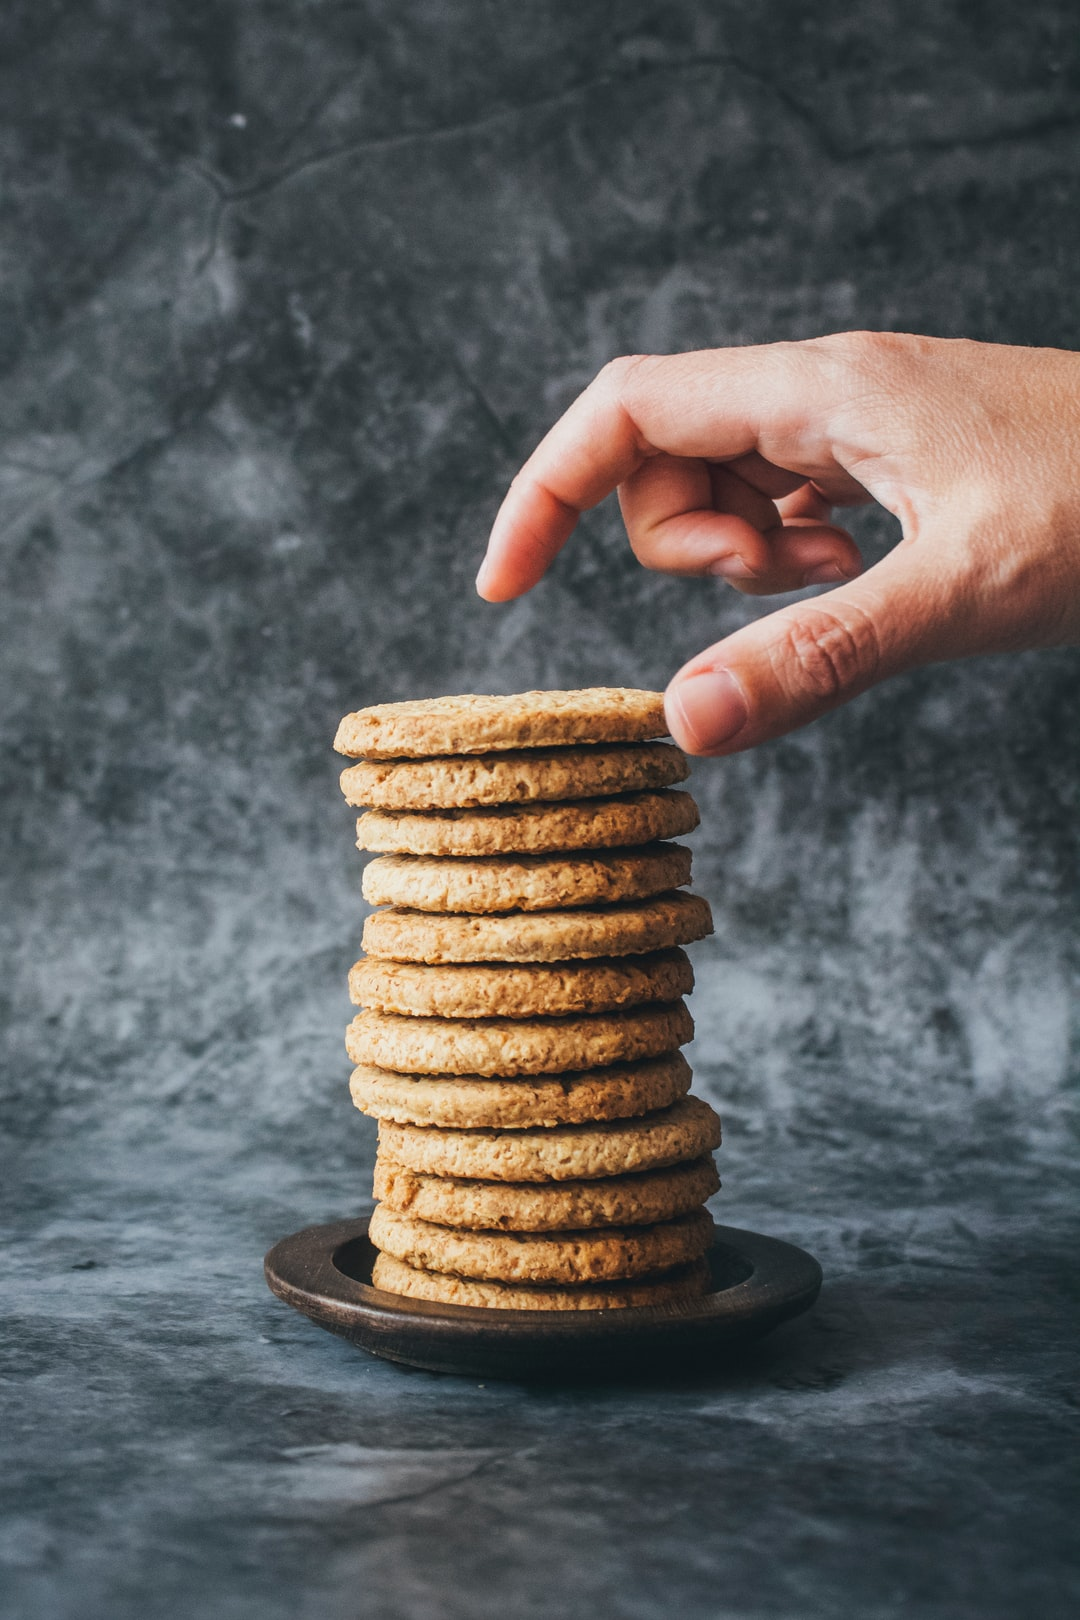 Stack of cookies. I'll just take one cookie